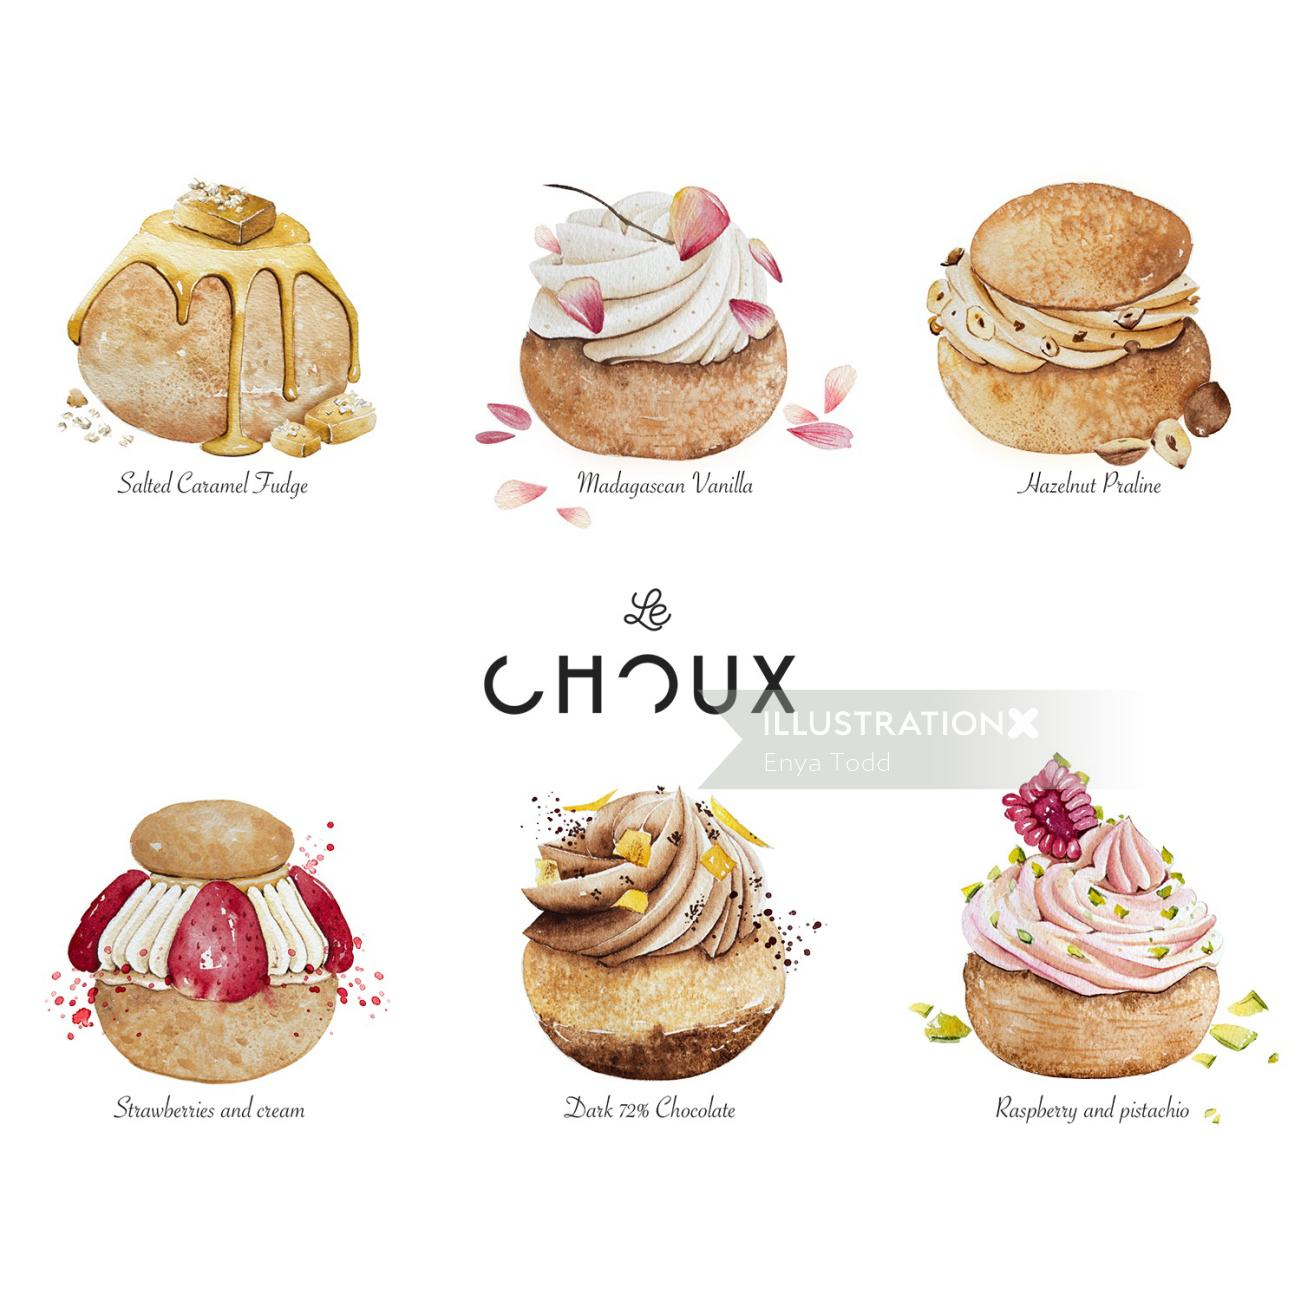 Menu design for LeChoux London